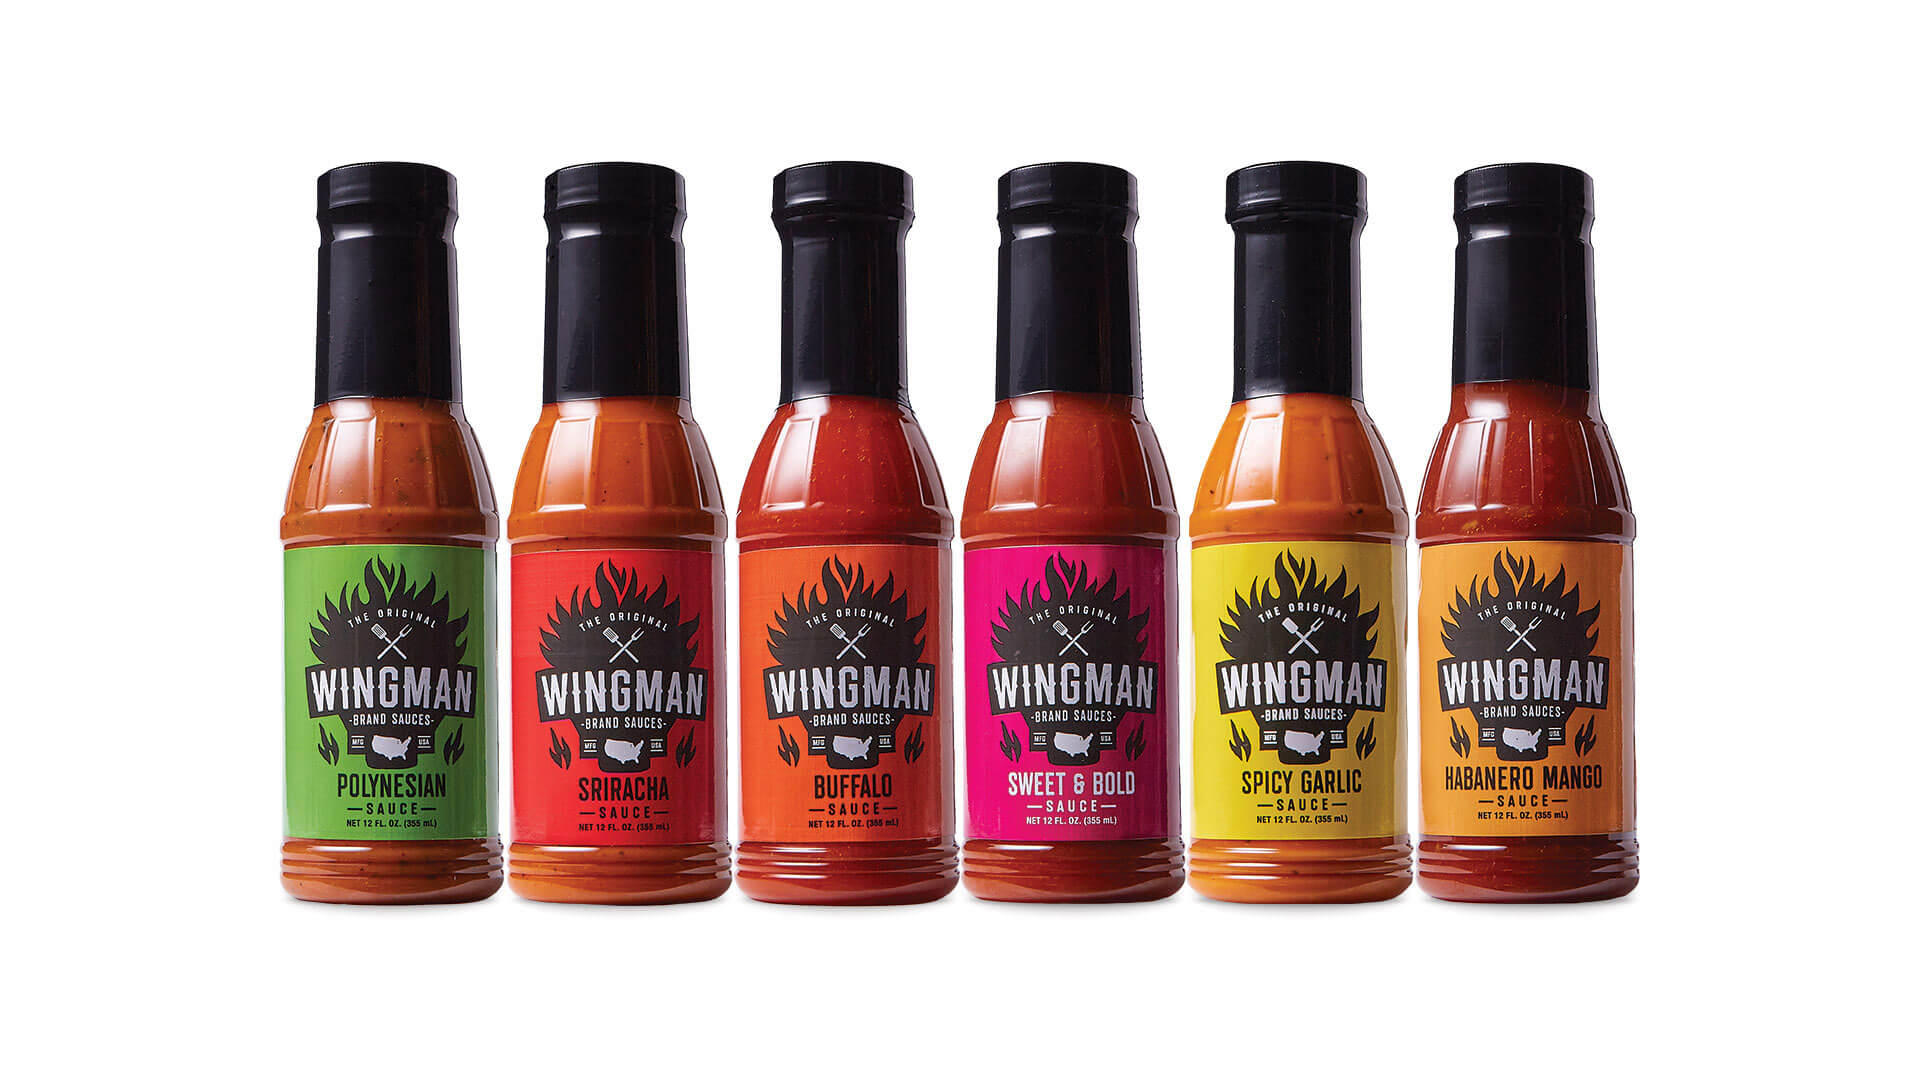 Think Tank PR Marketing Design Wingman Sauce commercial photography